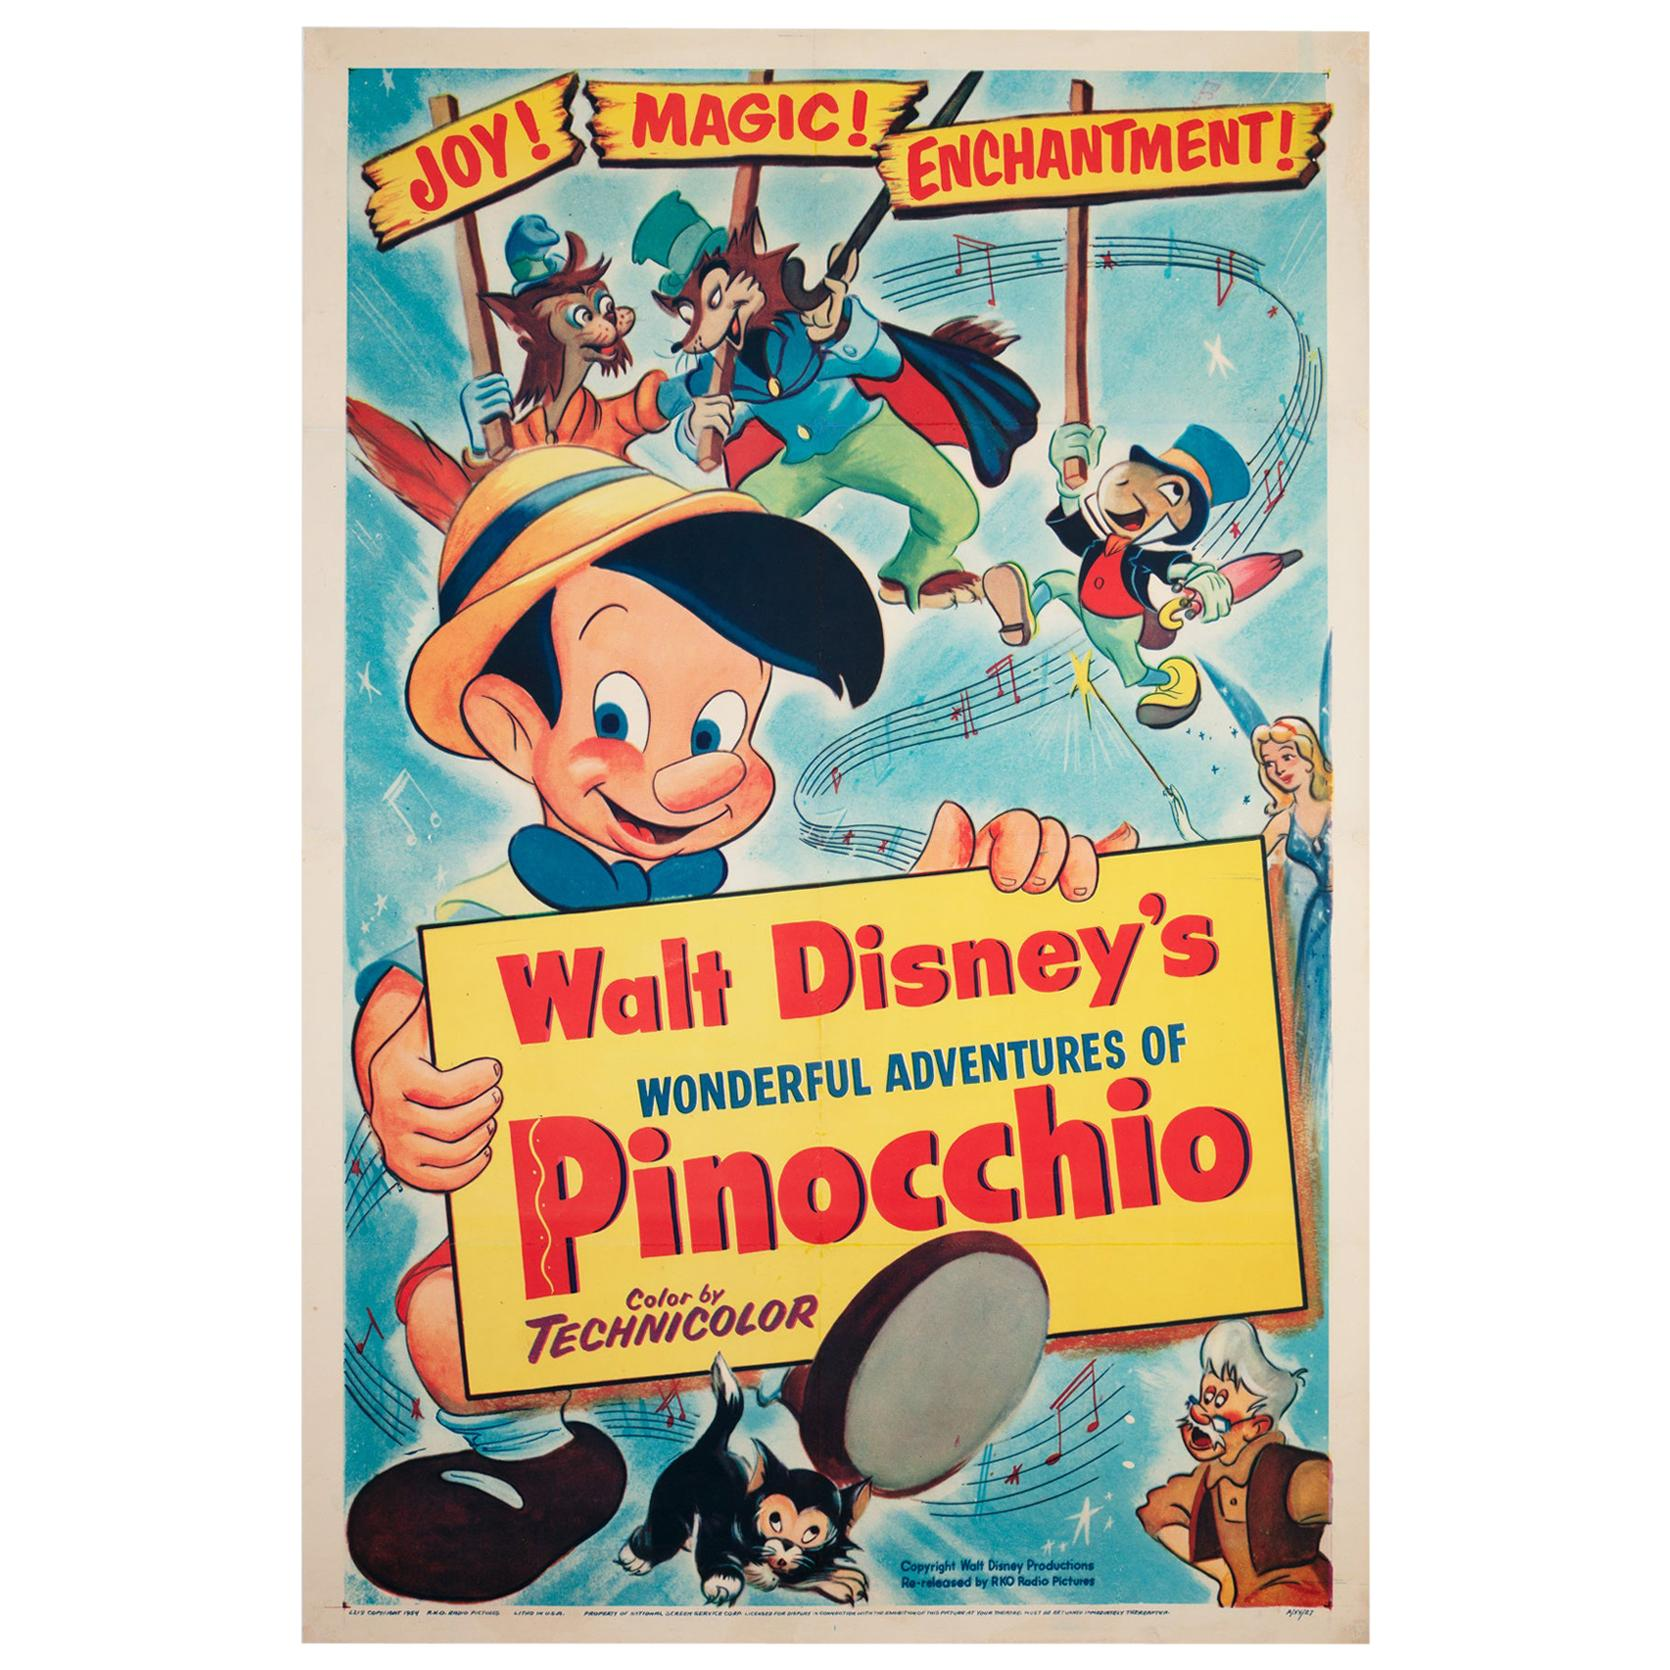 Pinocchio R1954 US 1 Sheet Film Movie Poster, Linen Backed